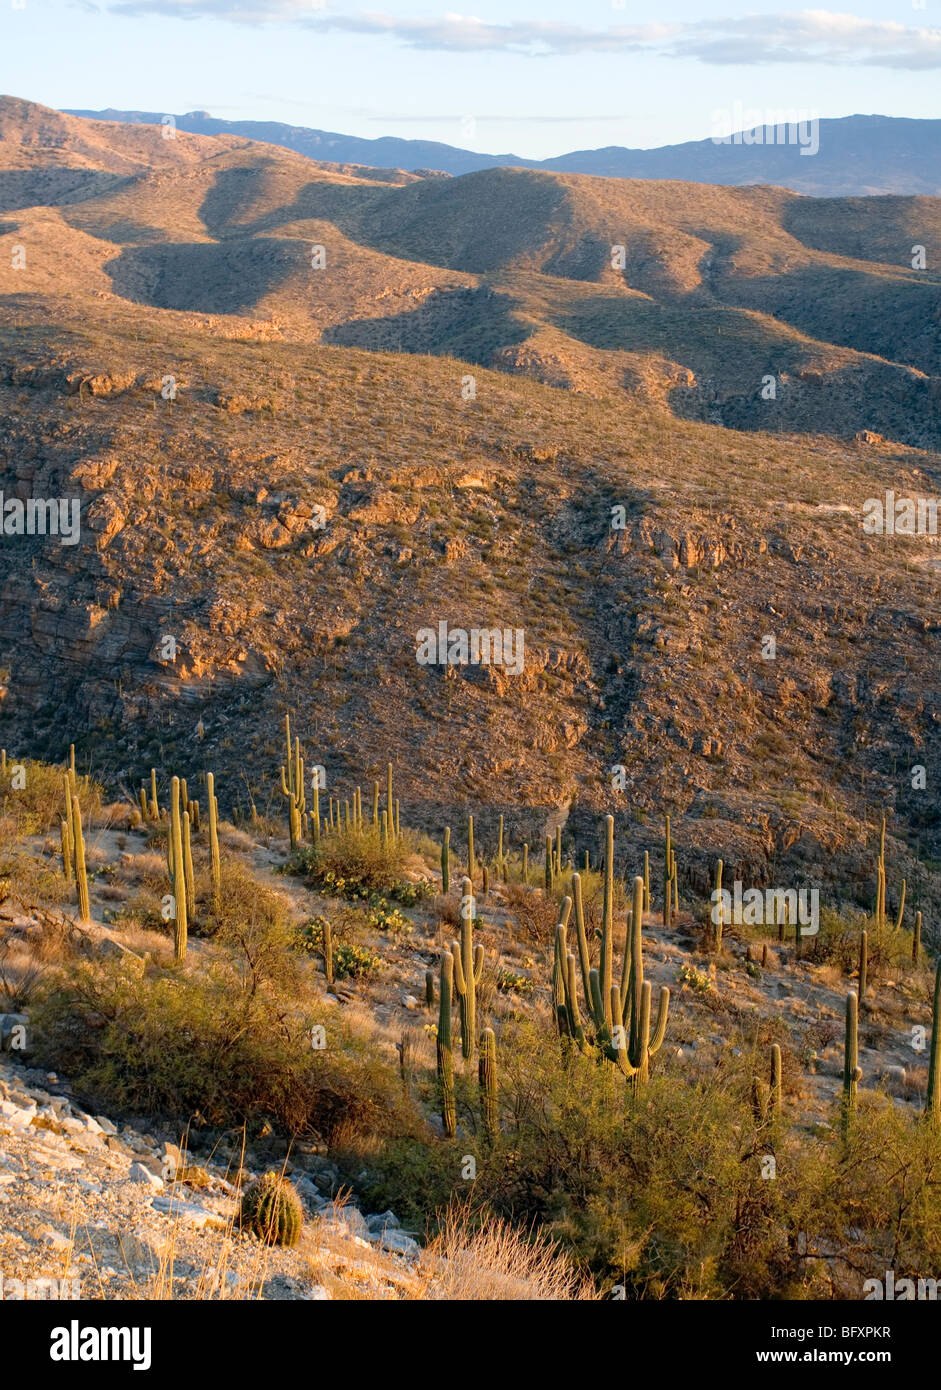 A forest of Saguaro cactus with the Rincon Mountains in the background - Stock Image